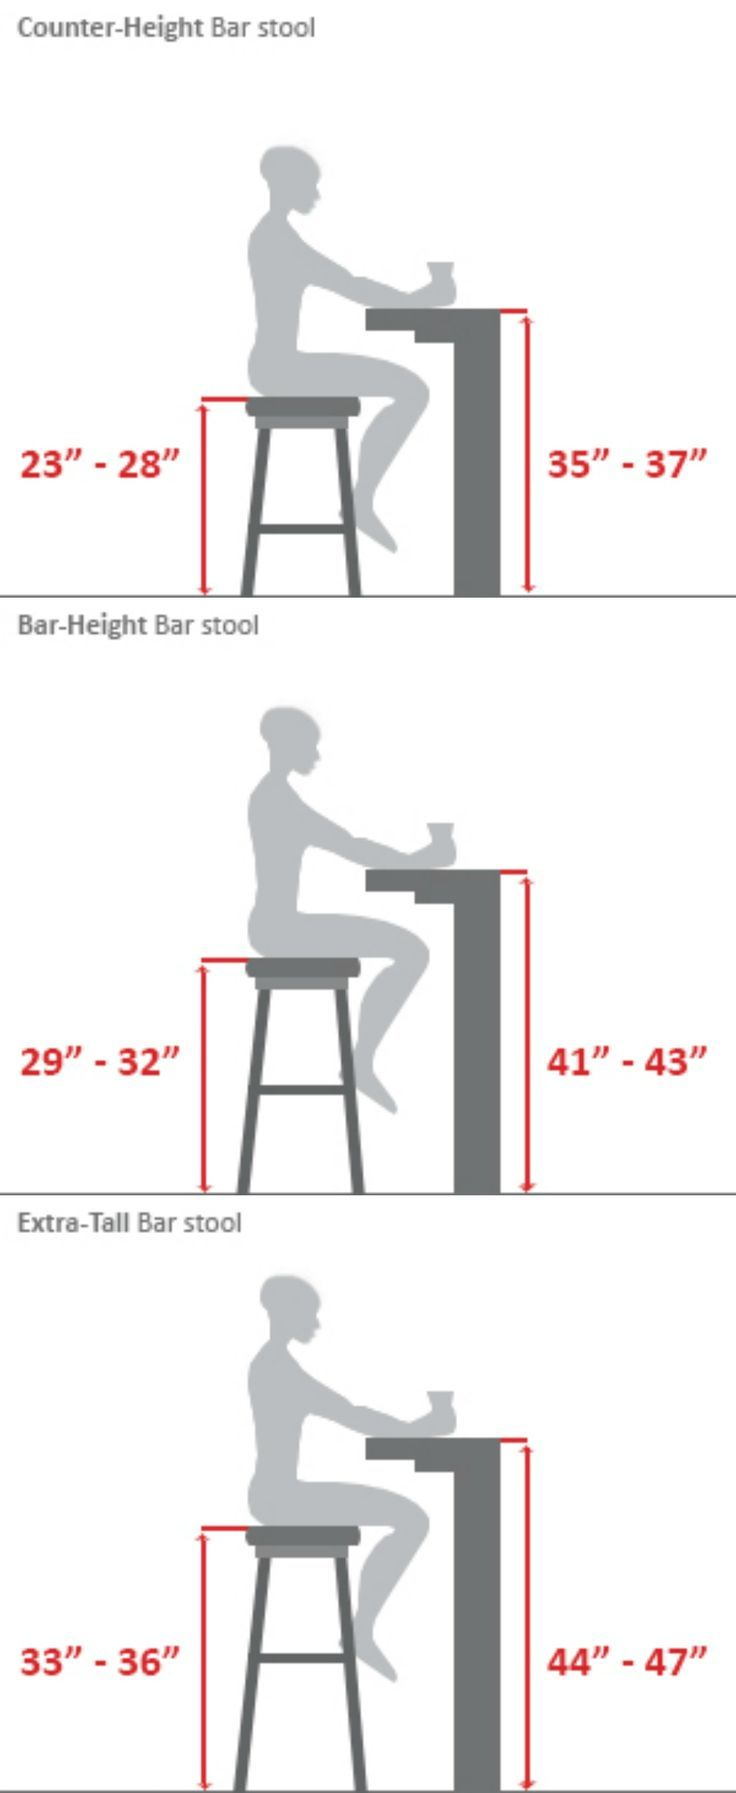 bar stool buying guide or the builder 39 s guide when building desks tables or bars these. Black Bedroom Furniture Sets. Home Design Ideas